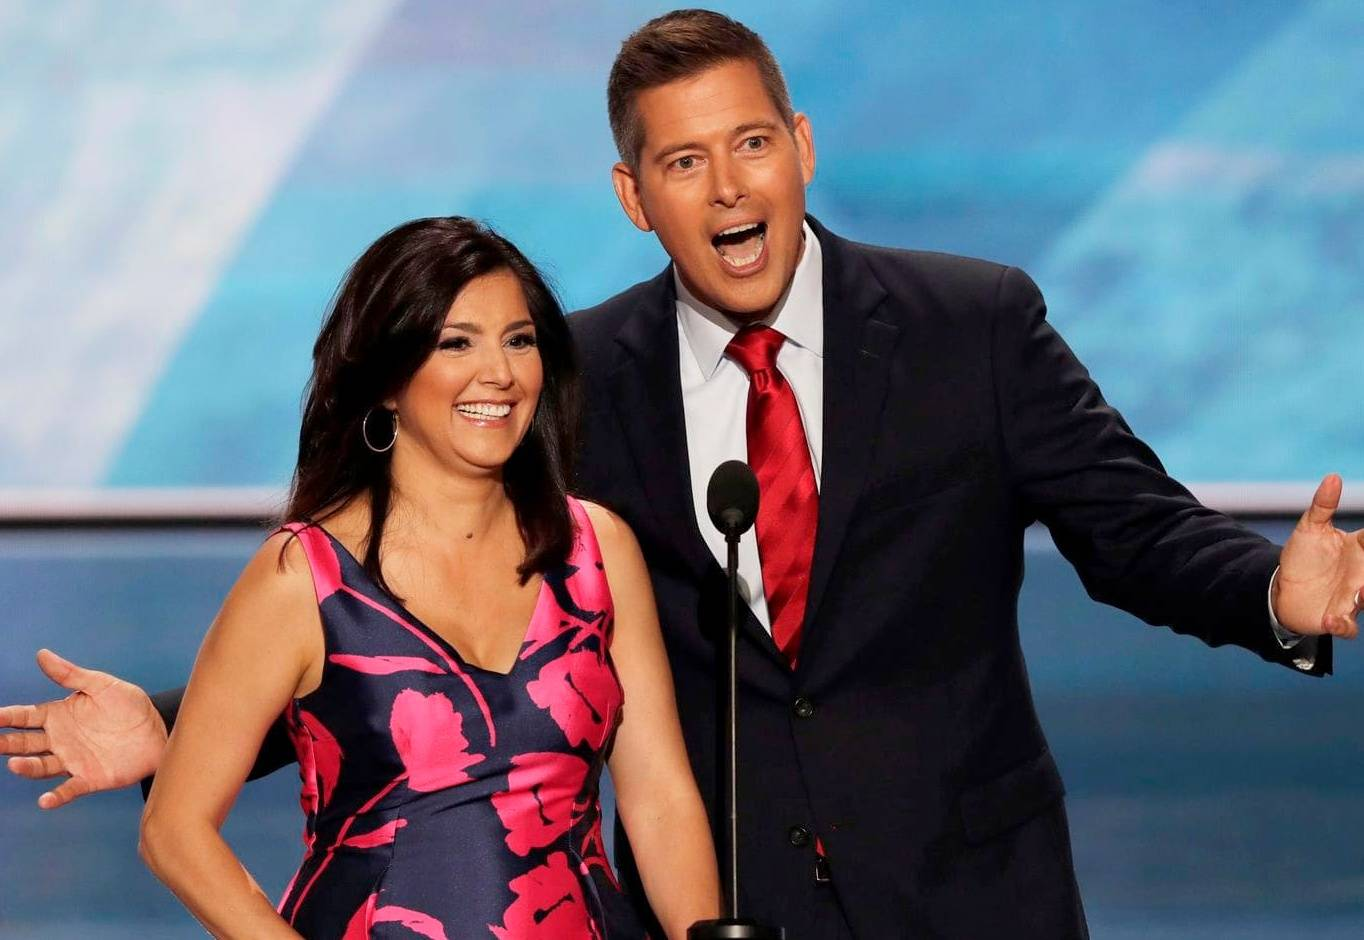 Sean Duffy WIfe